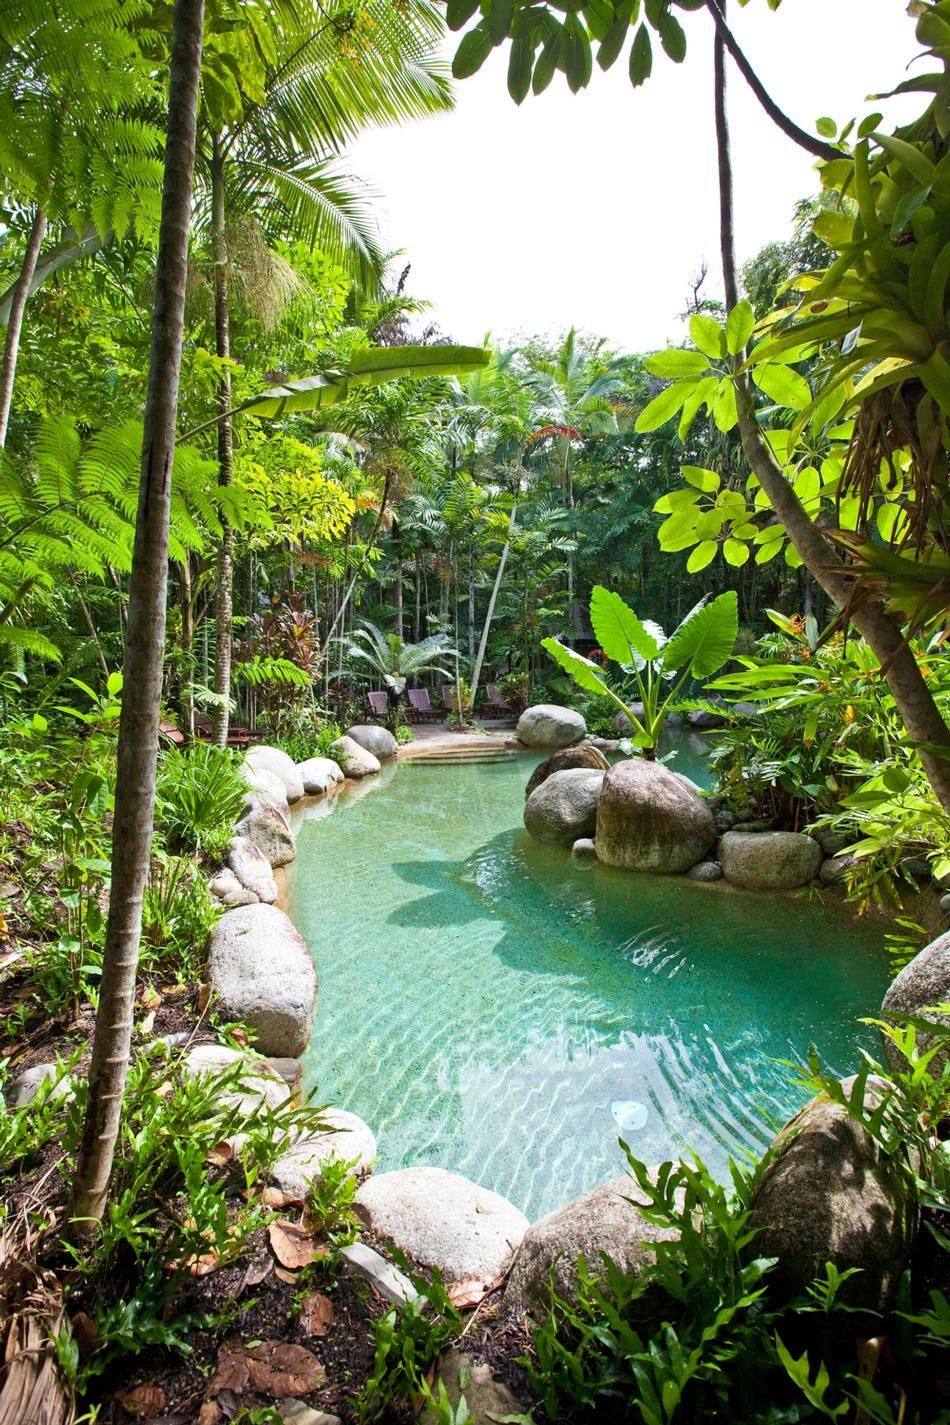 Rainforest pool at Silky Oaks Lodge, located next to the